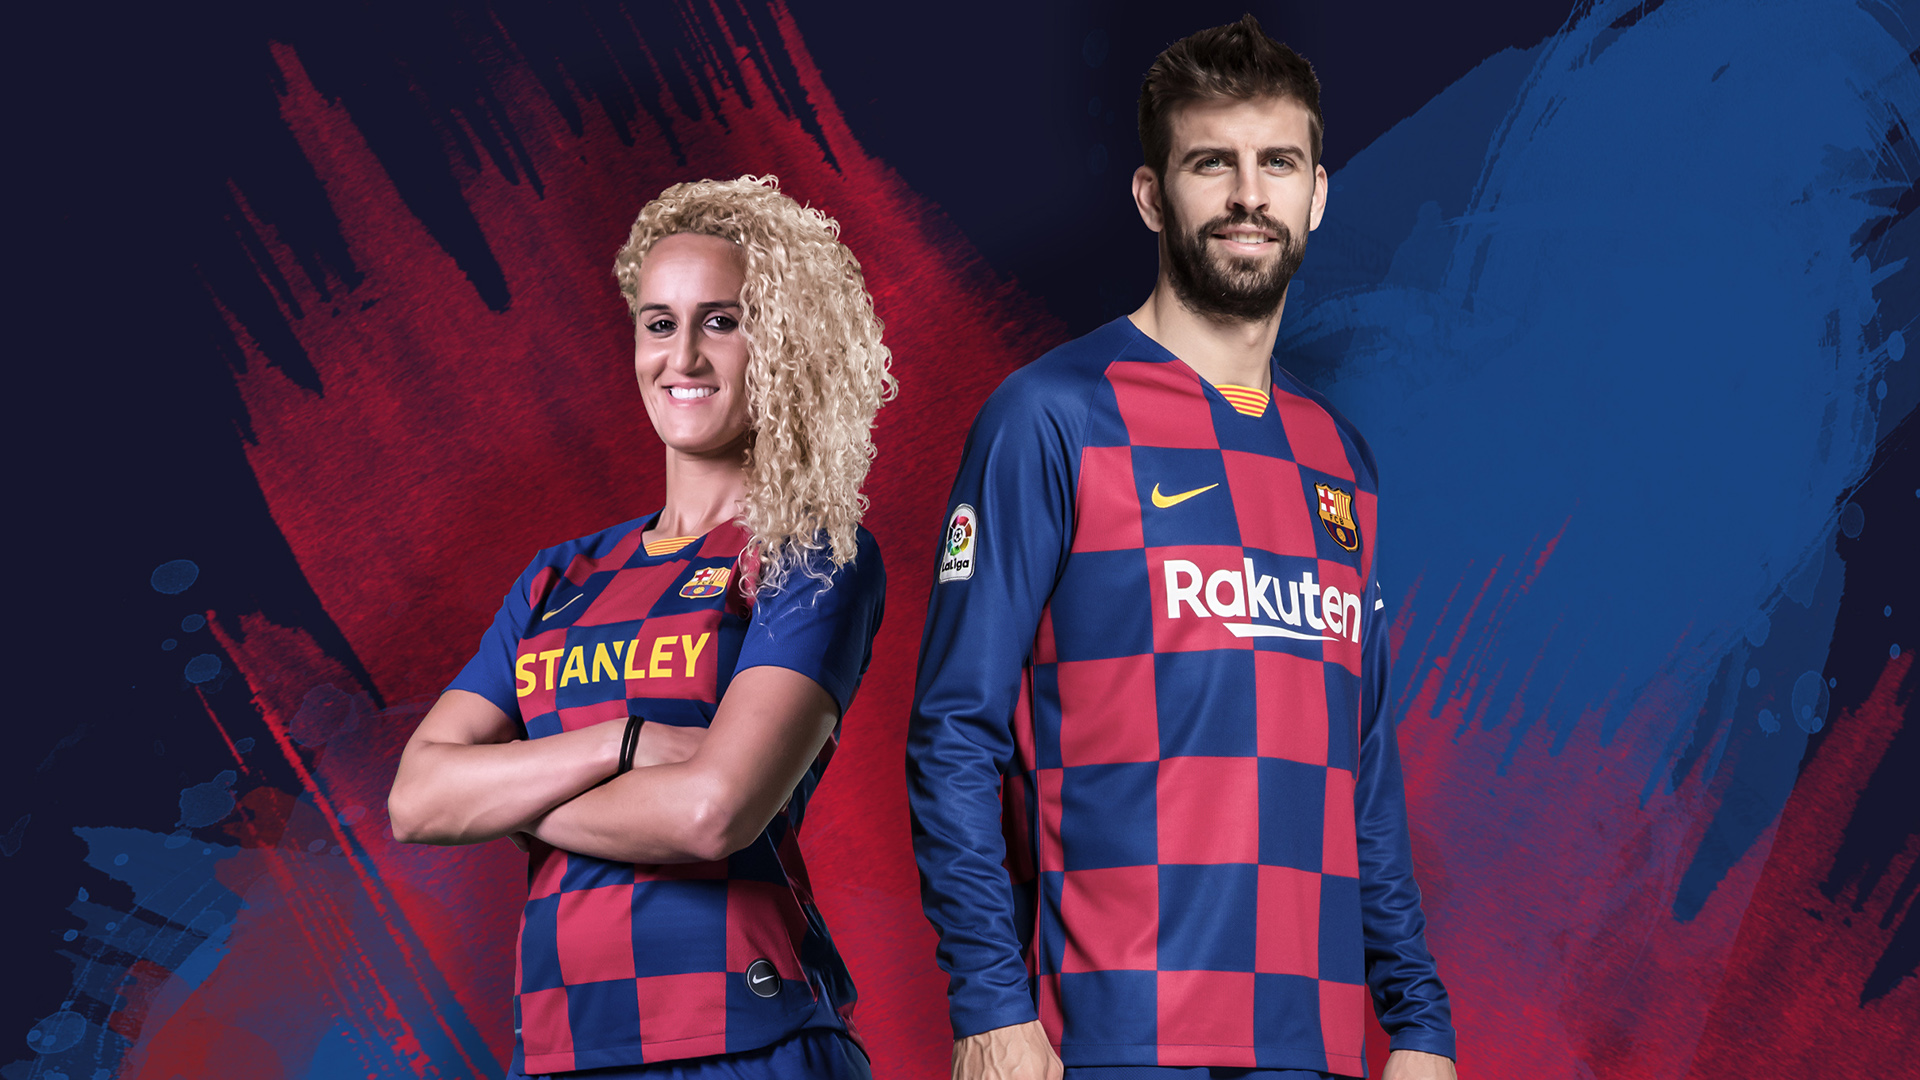 Barcelona's New Home Kit Is Their Most Controversial in Years